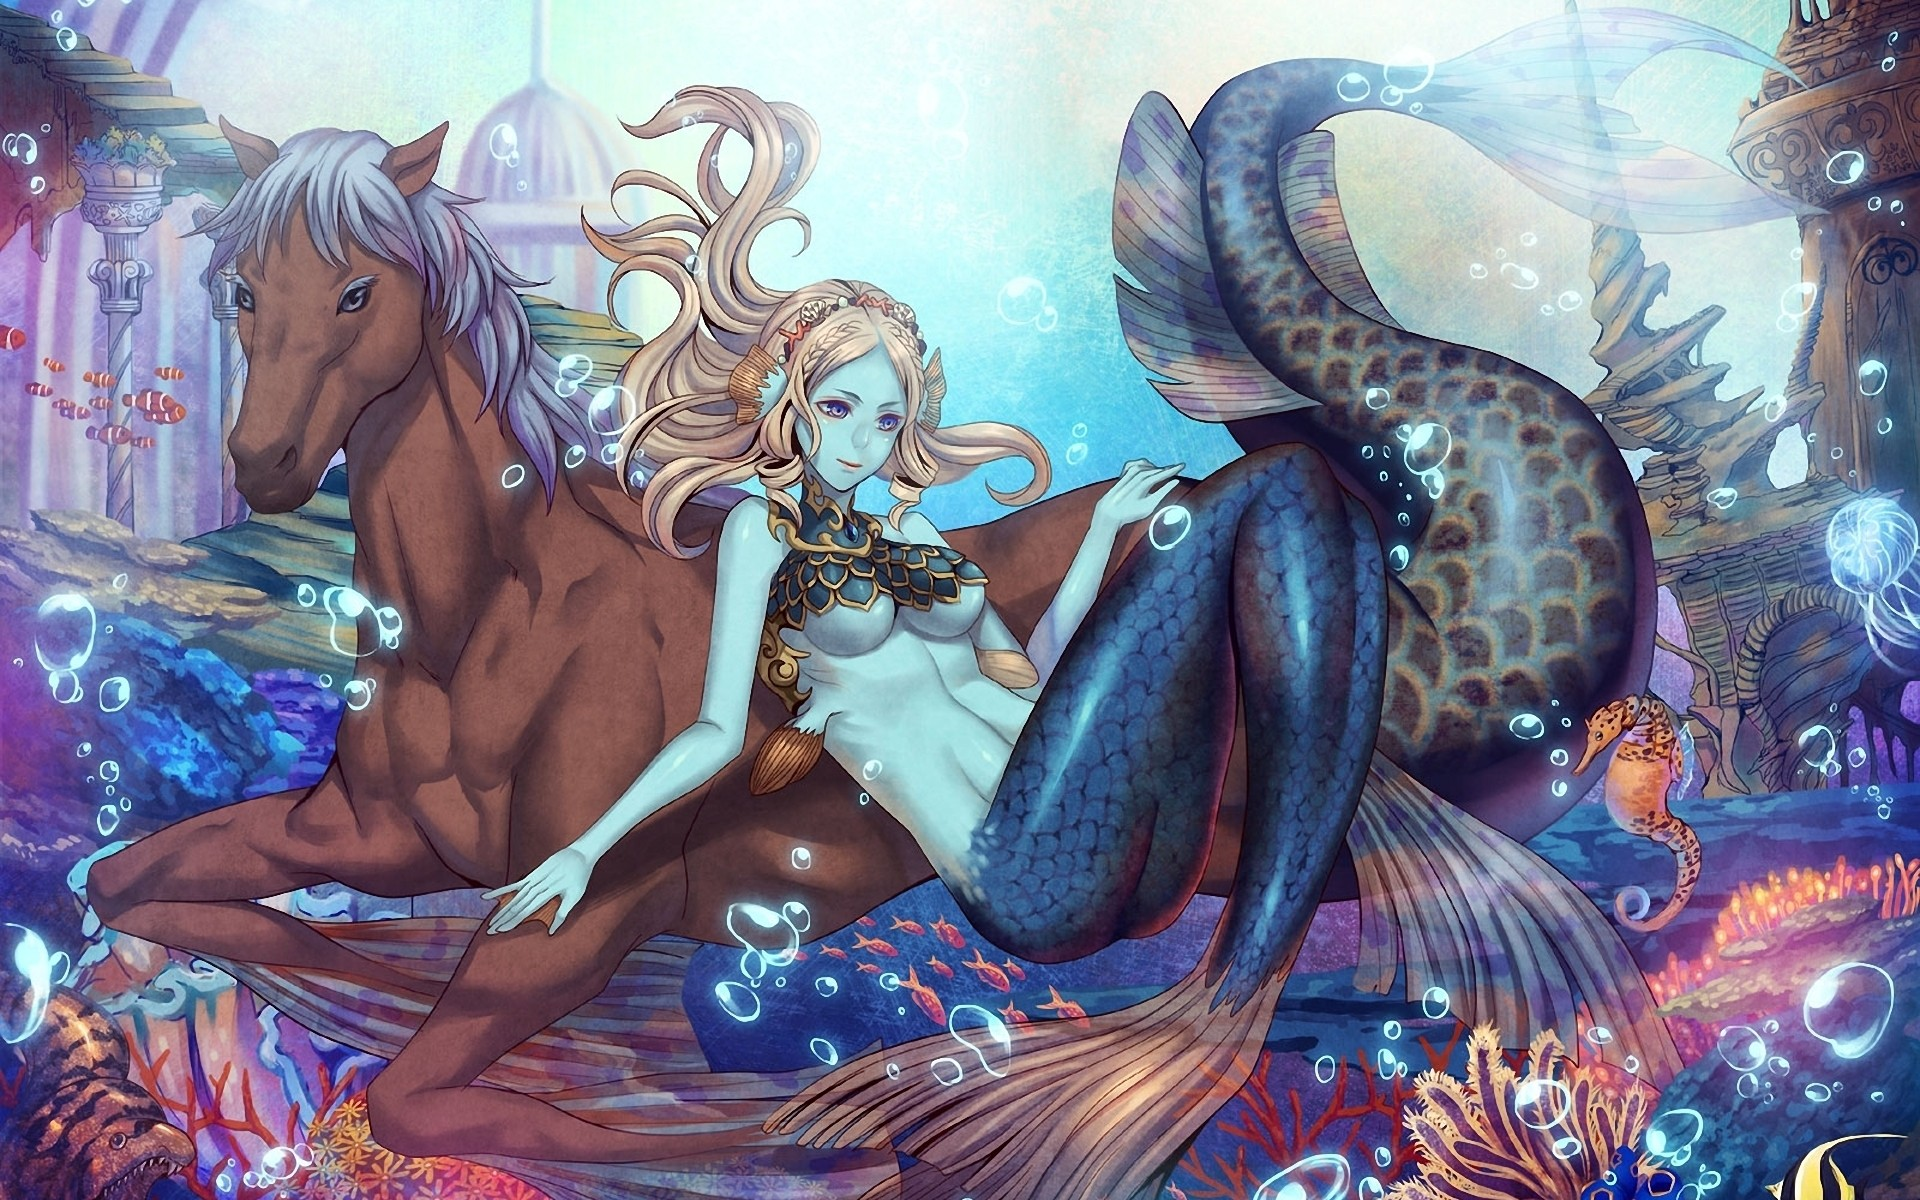 Mermaid Widescreen Wallpaper High Definition High